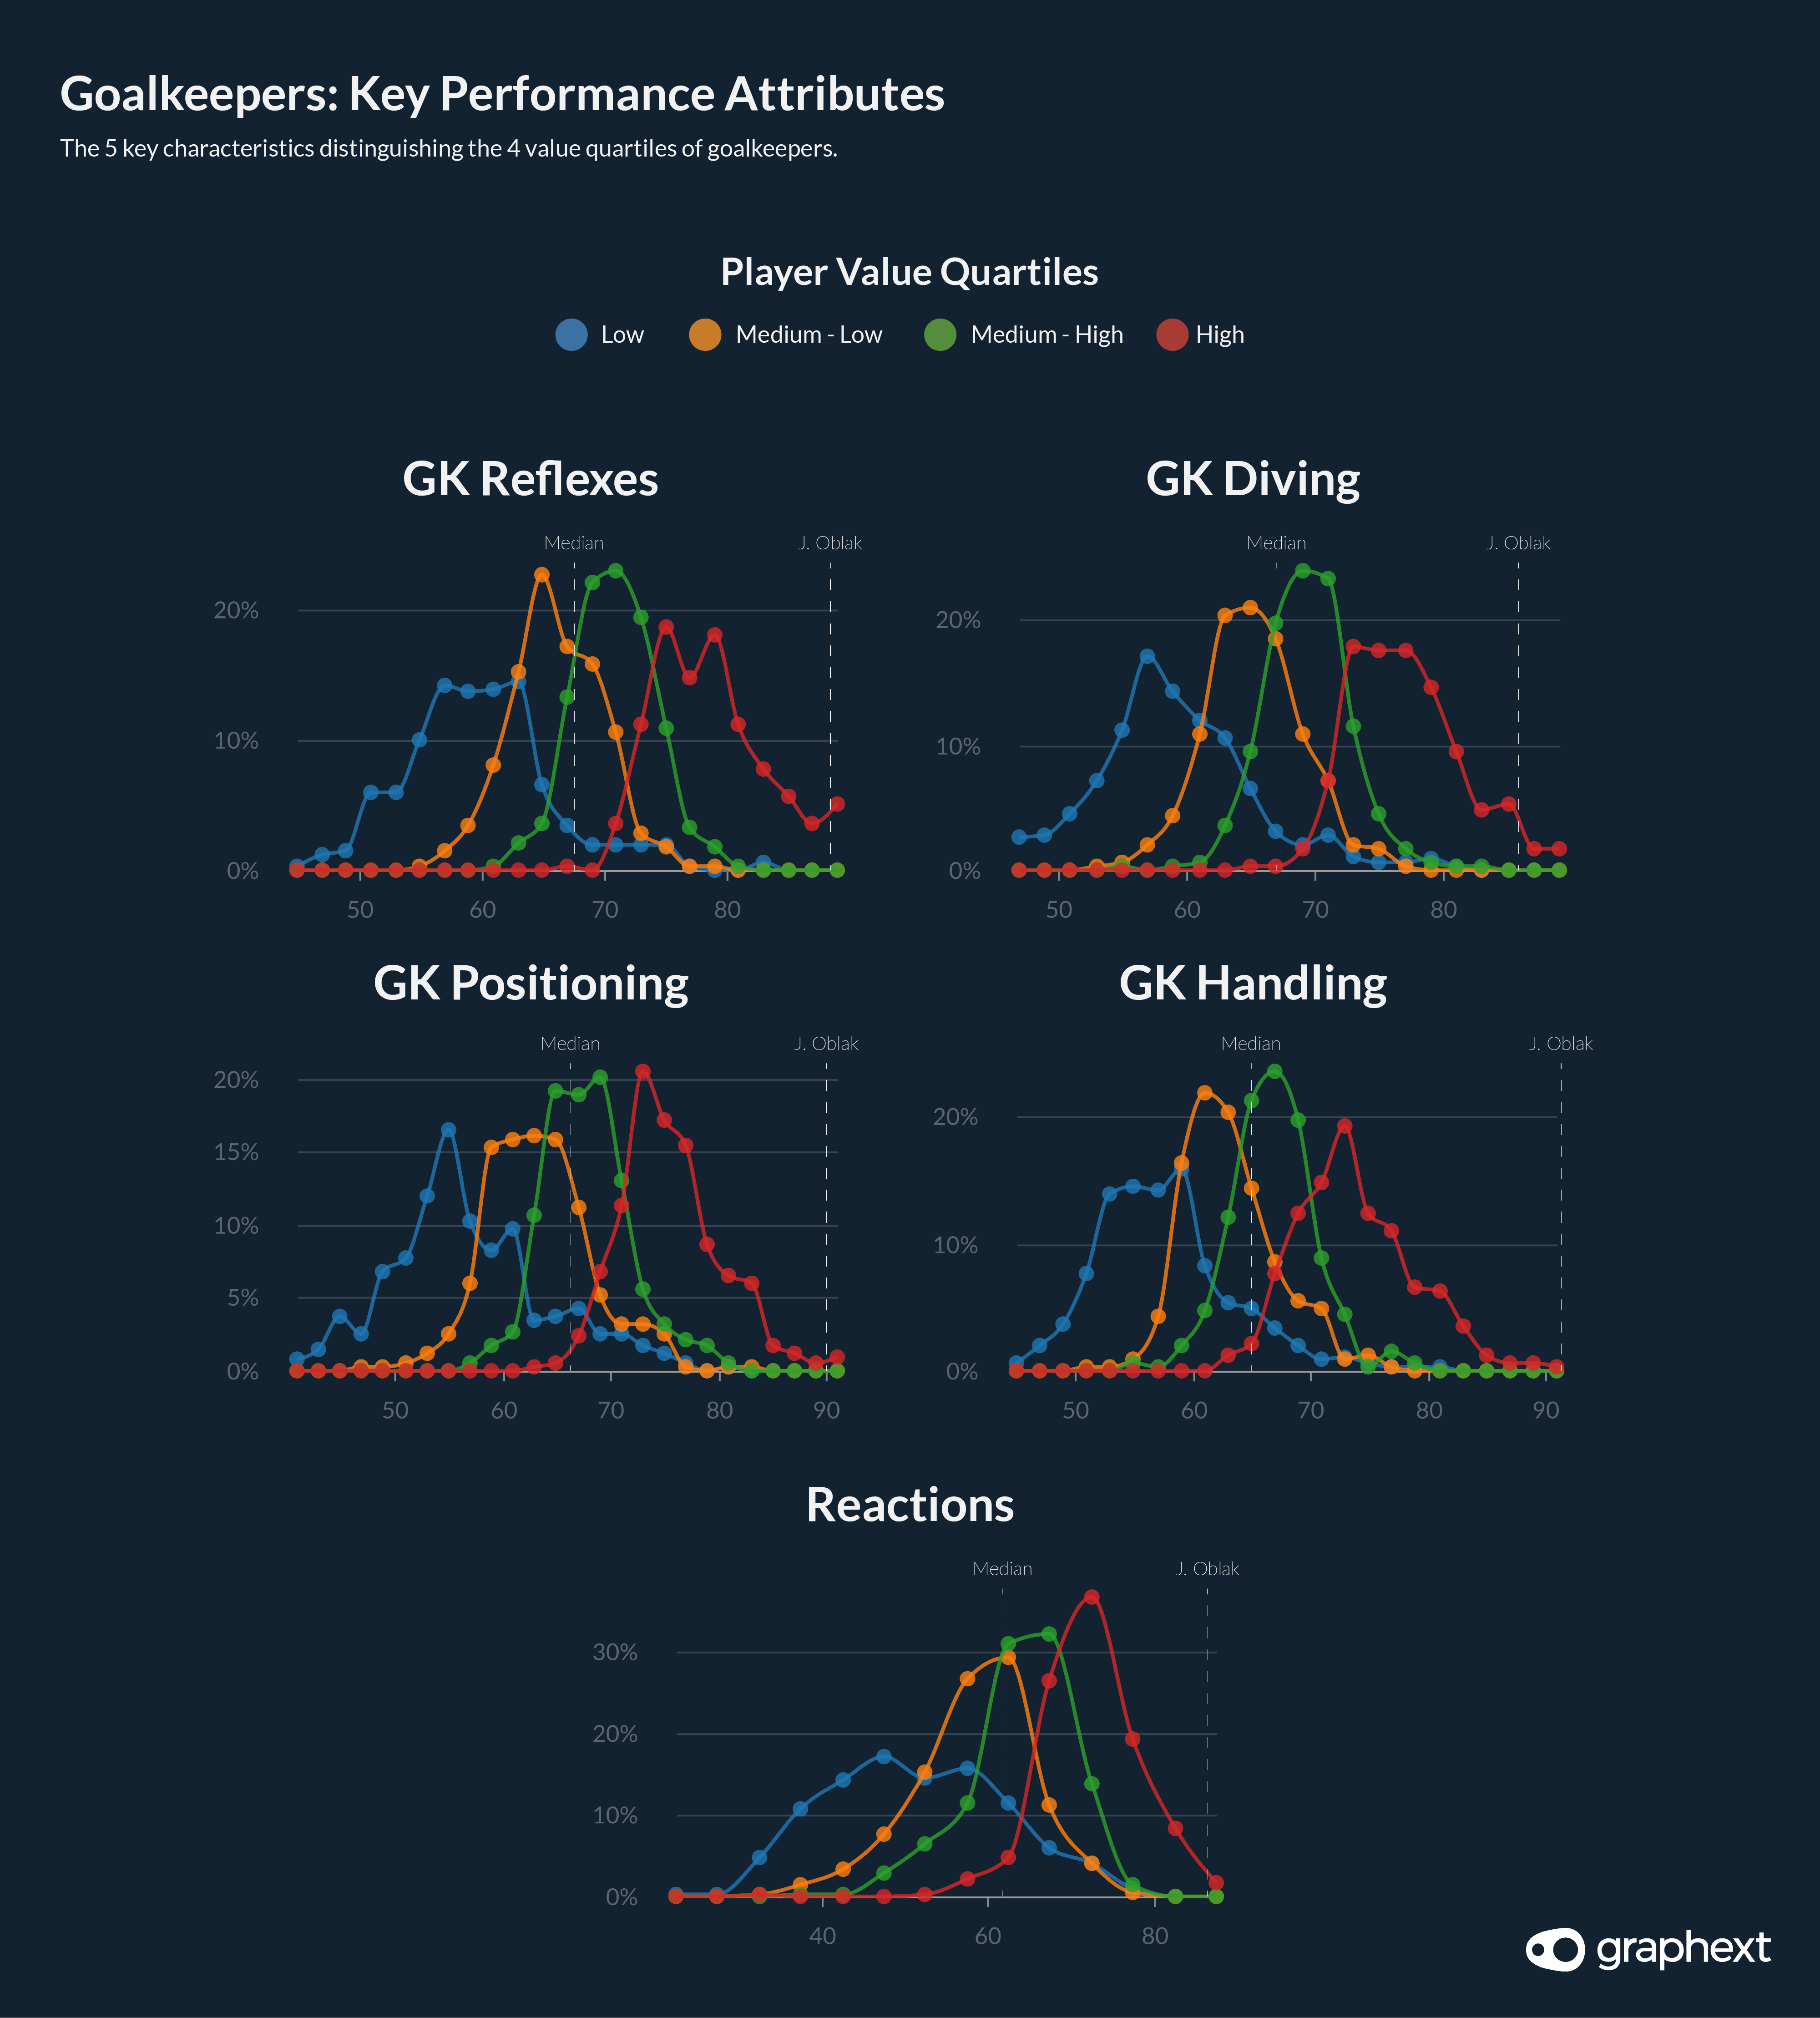 A series of charts showing the 5 most influential features when considering the value of goalkeepers in the FIFA dataset.